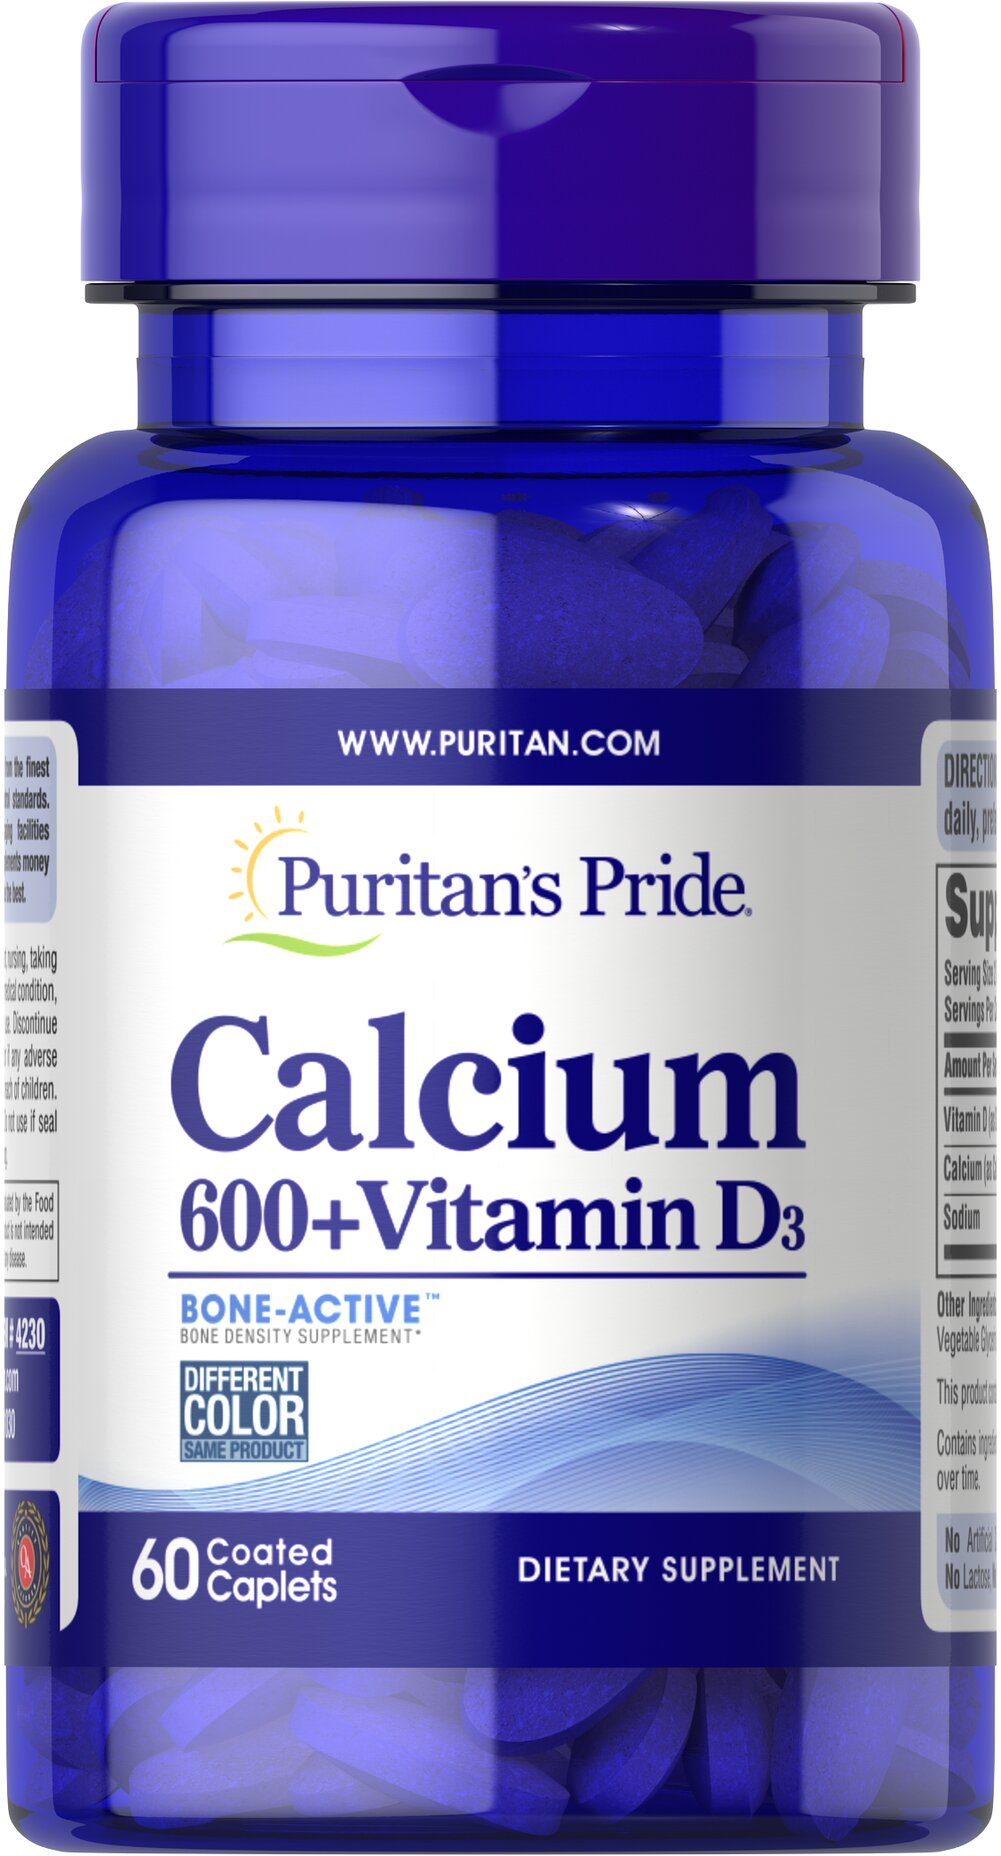 Calcium Carbonate 600 mg + Vitamin D 250 IU <p>Calcium is the primary mineral responsible for strong bones.** The body also uses Calcium for proper muscle contraction and nerve function.**  Just two tablets of our High Potency Calcium 600 + Vitamin D give you the protection of 120% of the Daily Value for Calcium. Each tablet contains 600 mg Calcium and 125 I.U. Vitamin D. Adults can take one or two tablets daily.</p> 60 Caplets 600 mg $2.09